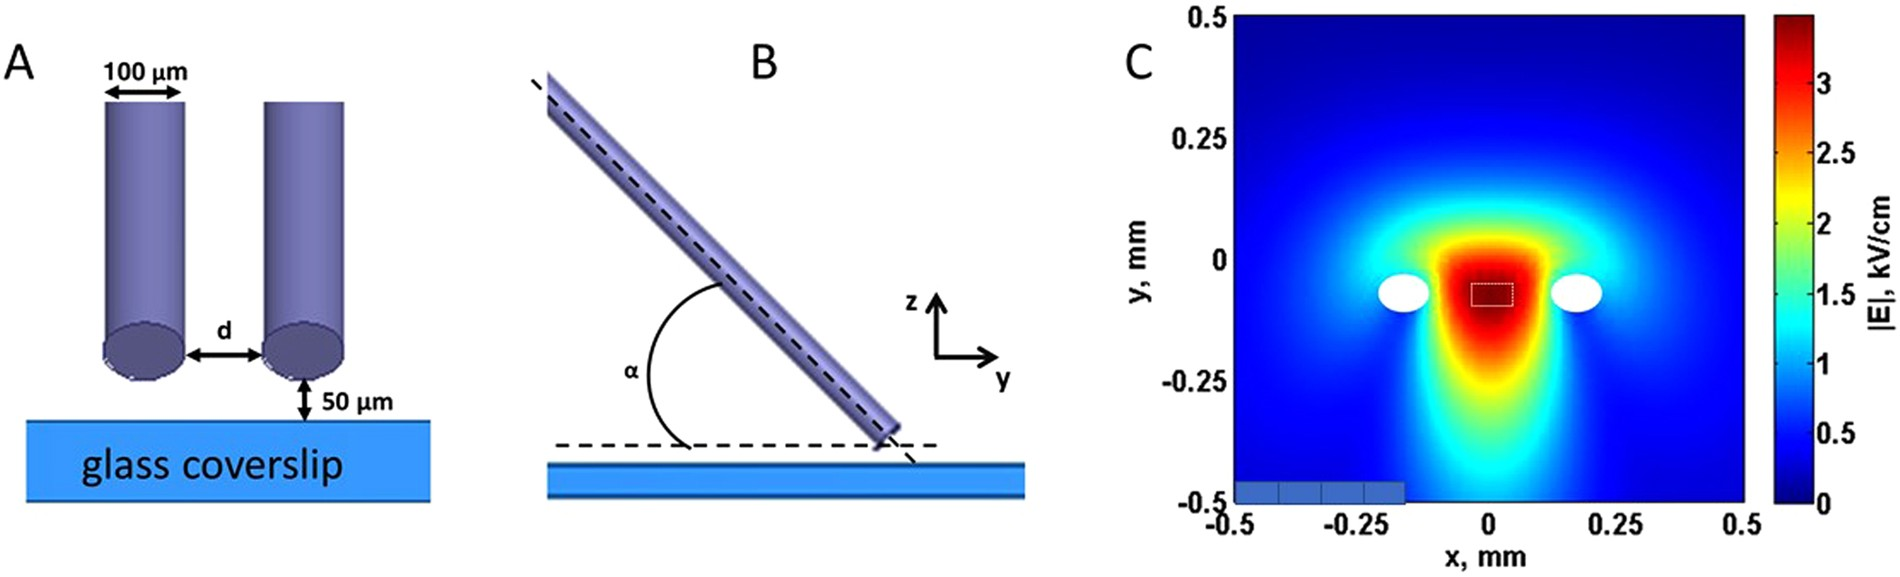 Excitation And Injury Of Ventricular Cardiomyocytes By Nano To Millisecond Electric Shocks Scientific Reports